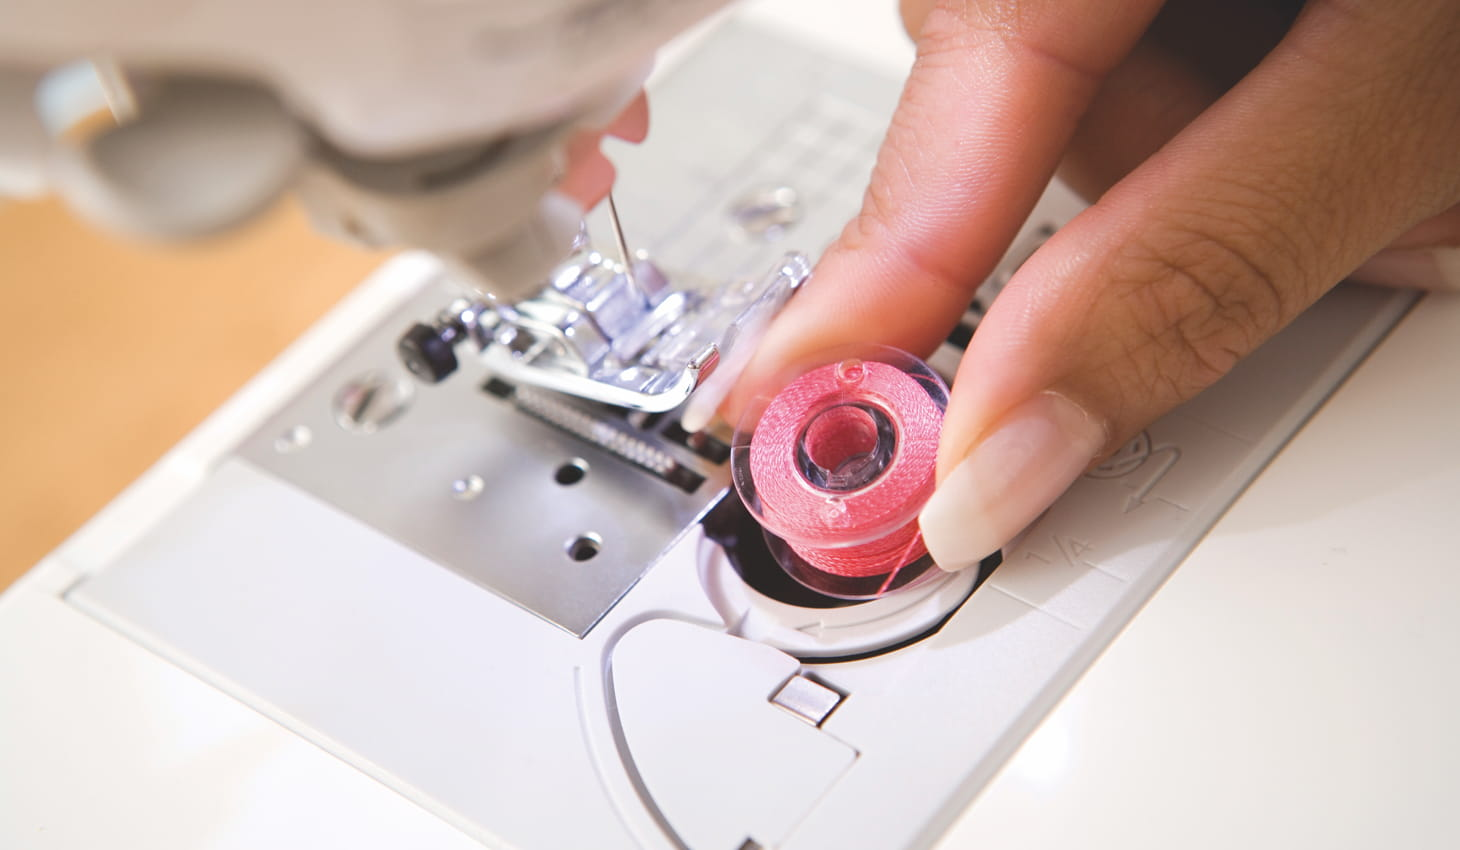 someone replacing the bobbin on a sewing machine